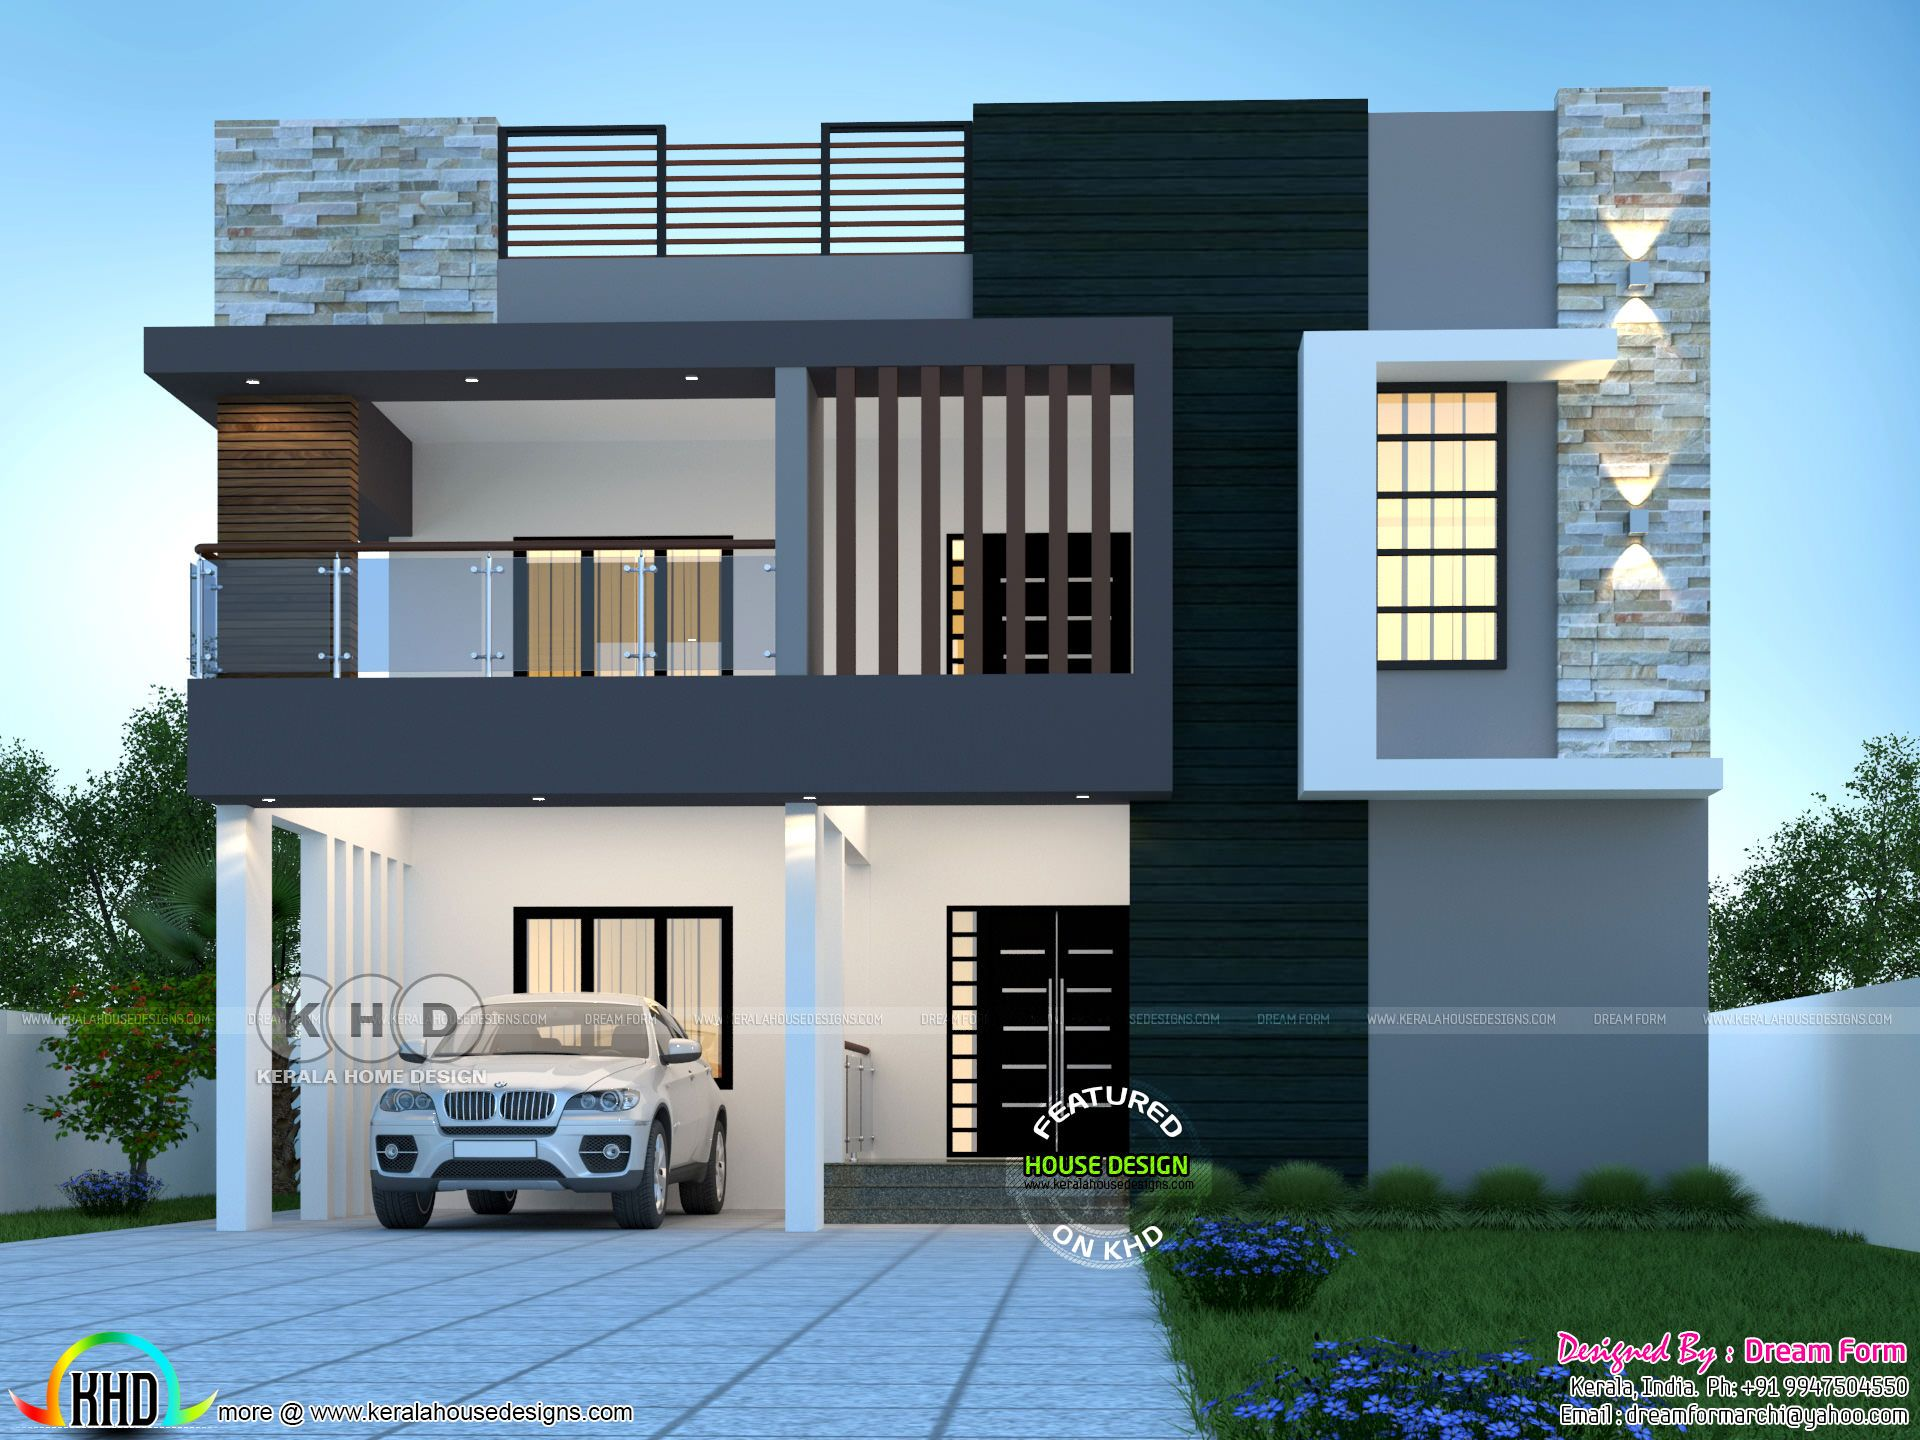 6 Bedrooms 3840 Sq Ft Duplex Modern Home Design In 2020 Kerala